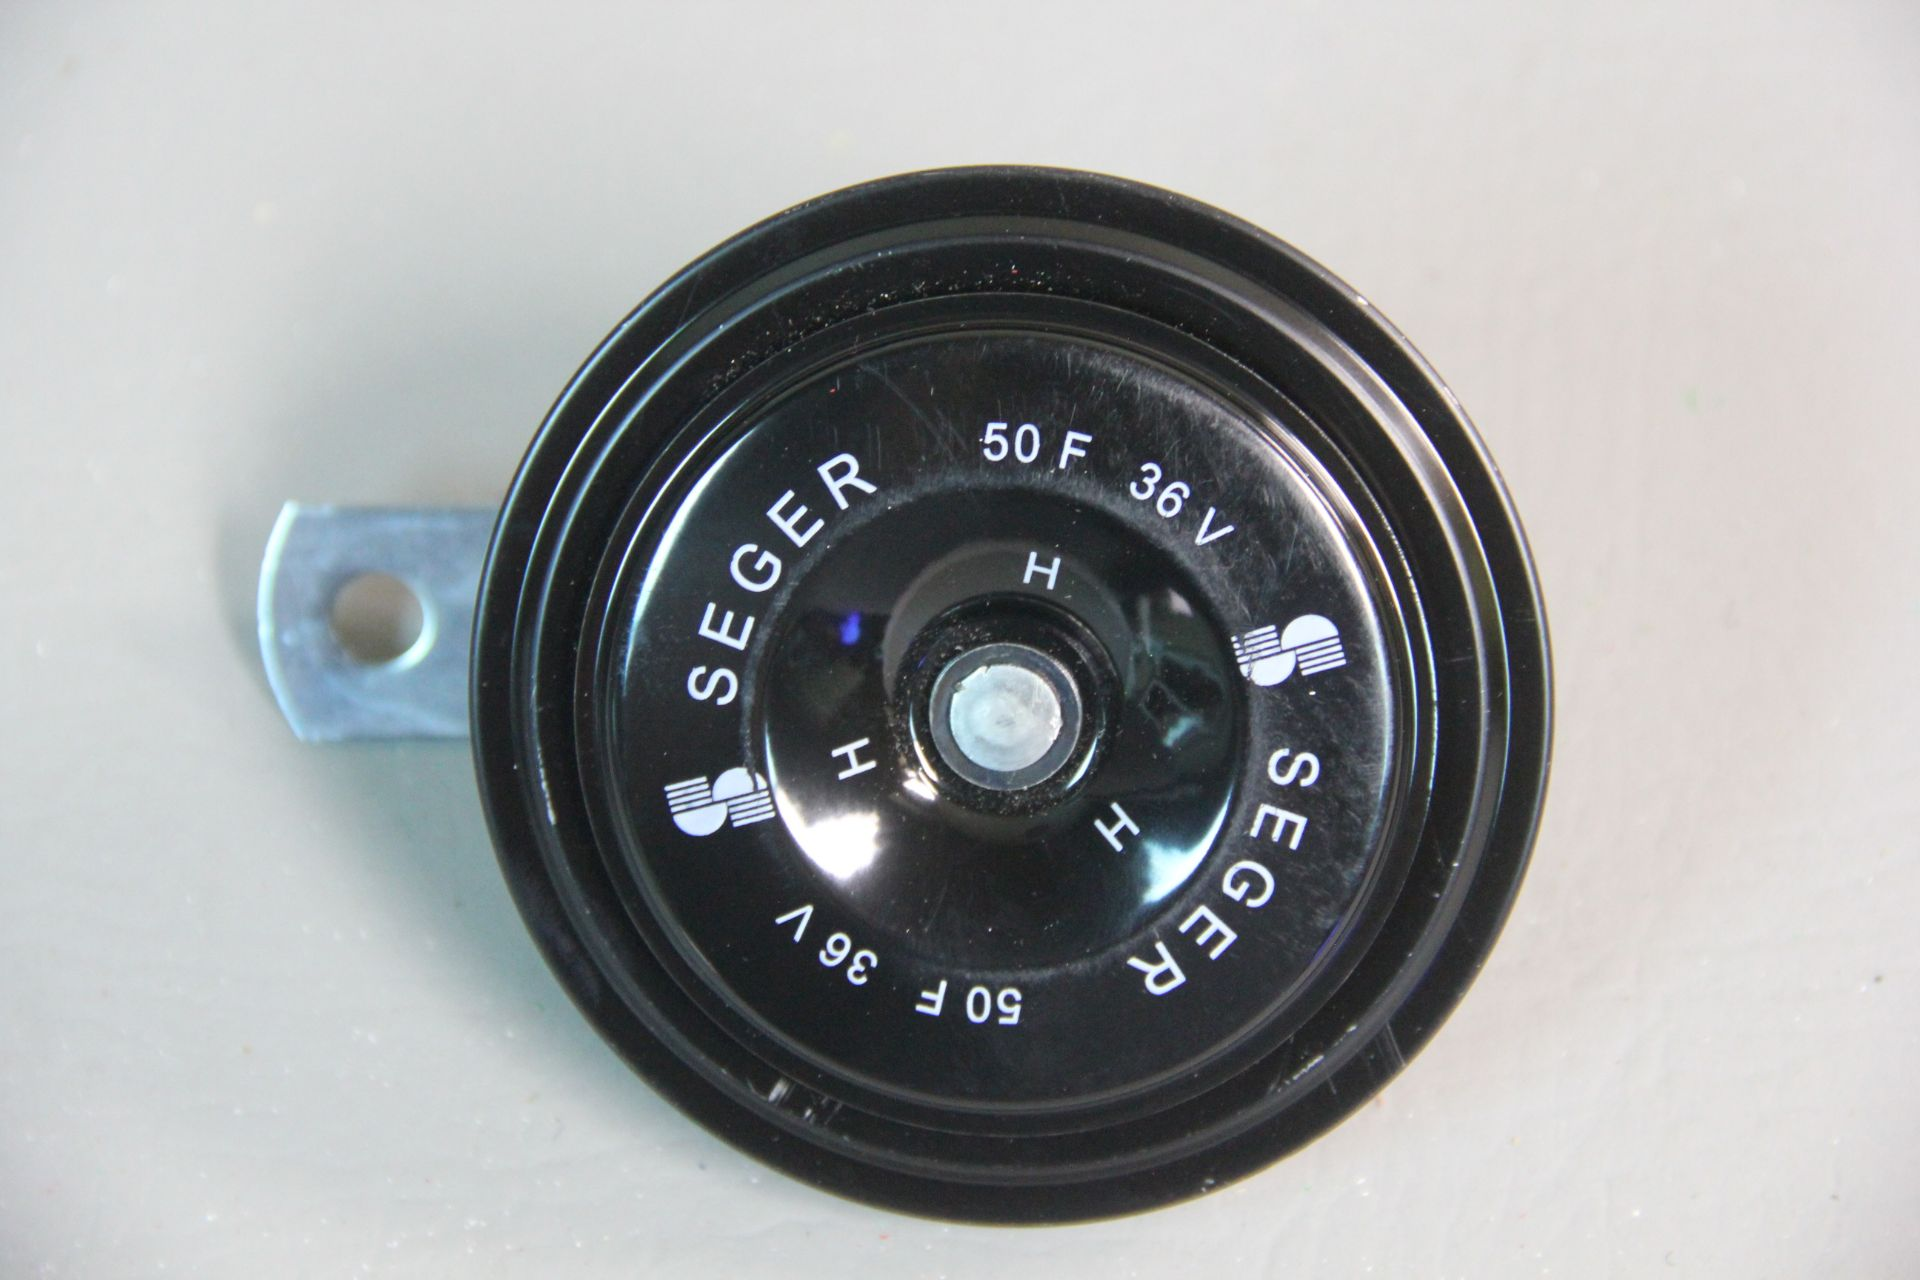 NEW SEGER INDUSTRIAL DISC SAFETY HORN - Image 2 of 4